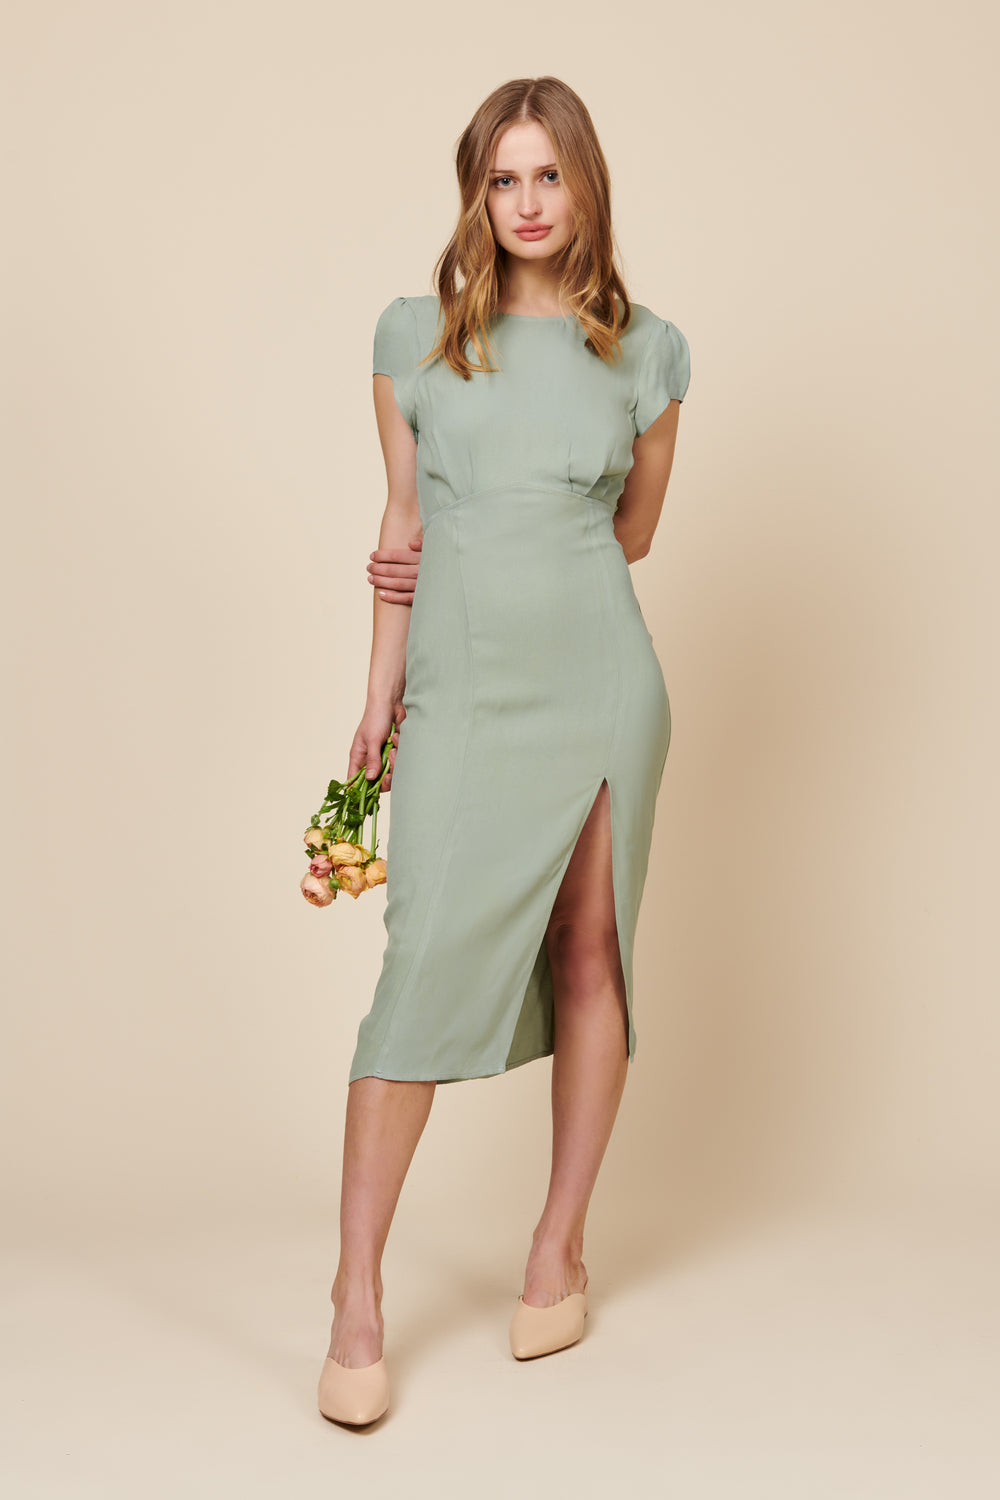 Scarlette Dress in Sage - Whimsy & Row